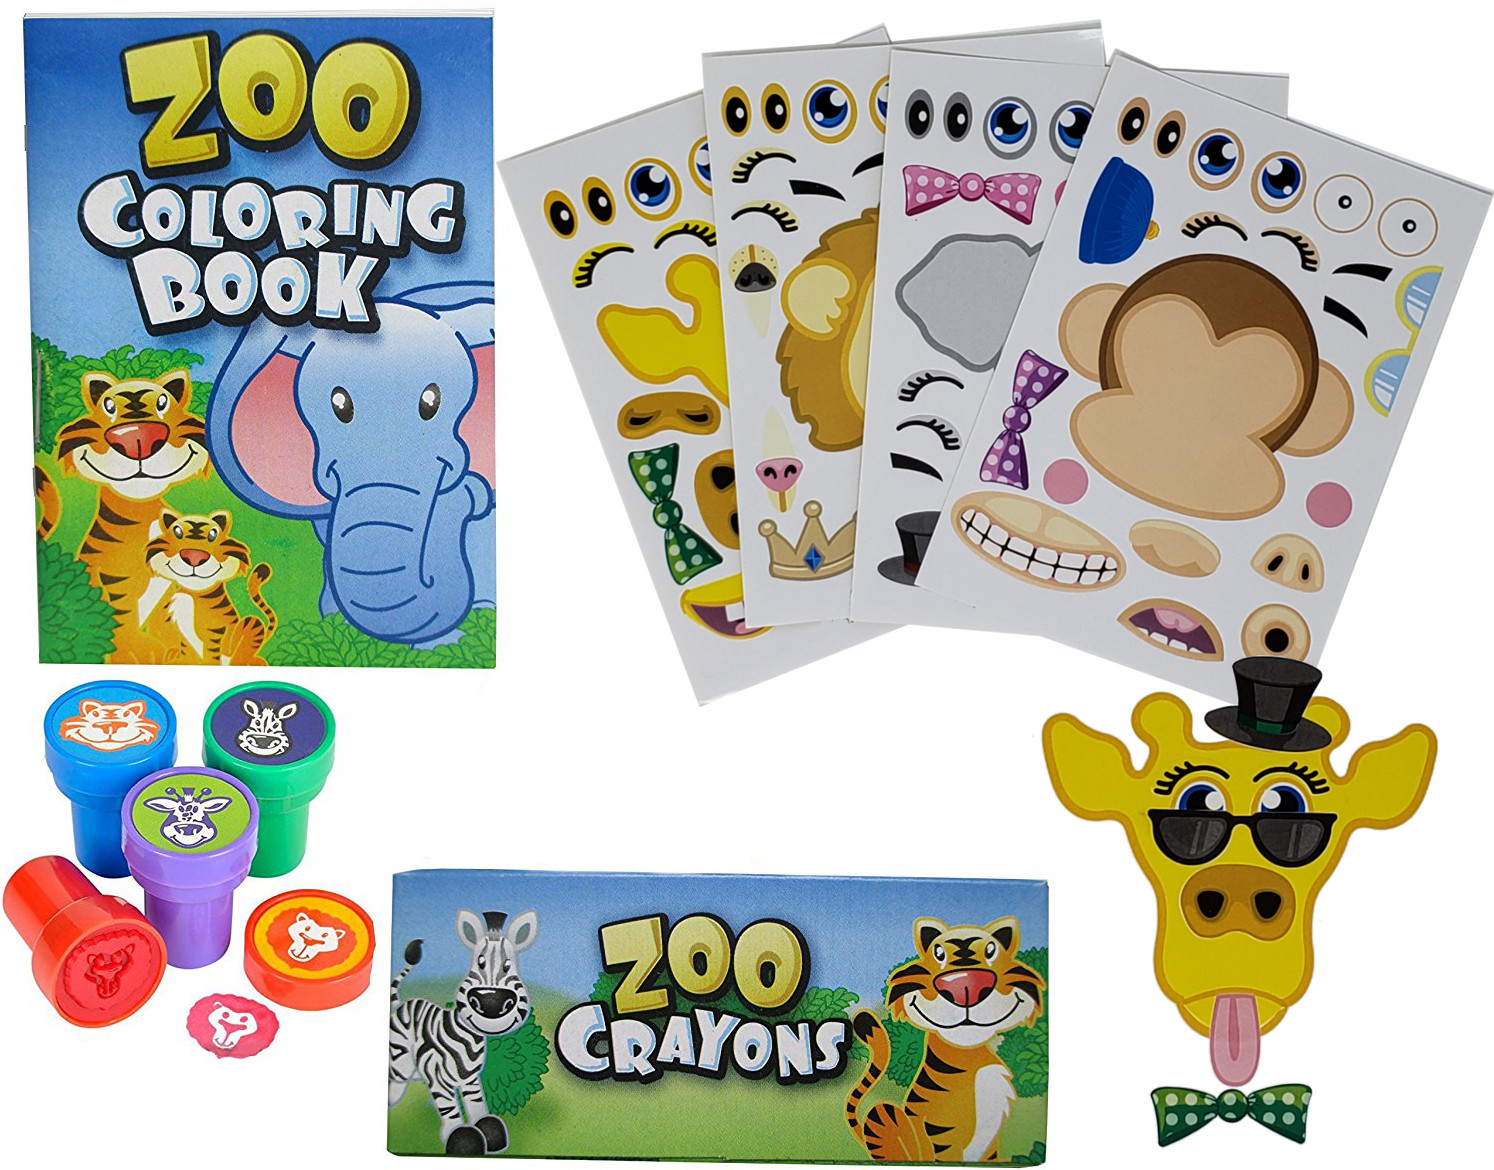 12 Animal Coloring Books and Crayons, 12 Jungle Zoo Stampers, 12 Zoo ...